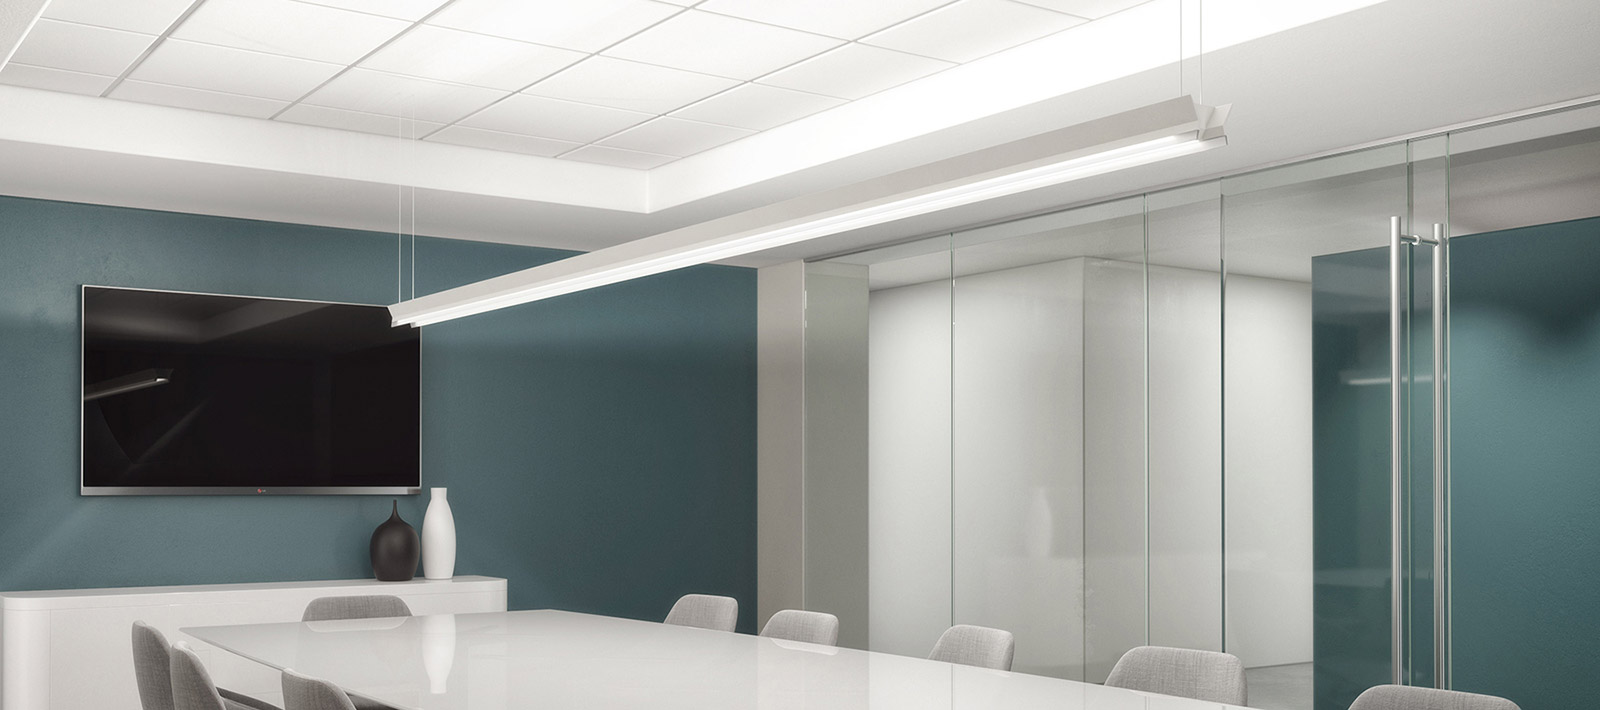 Conference Rooms Lighting